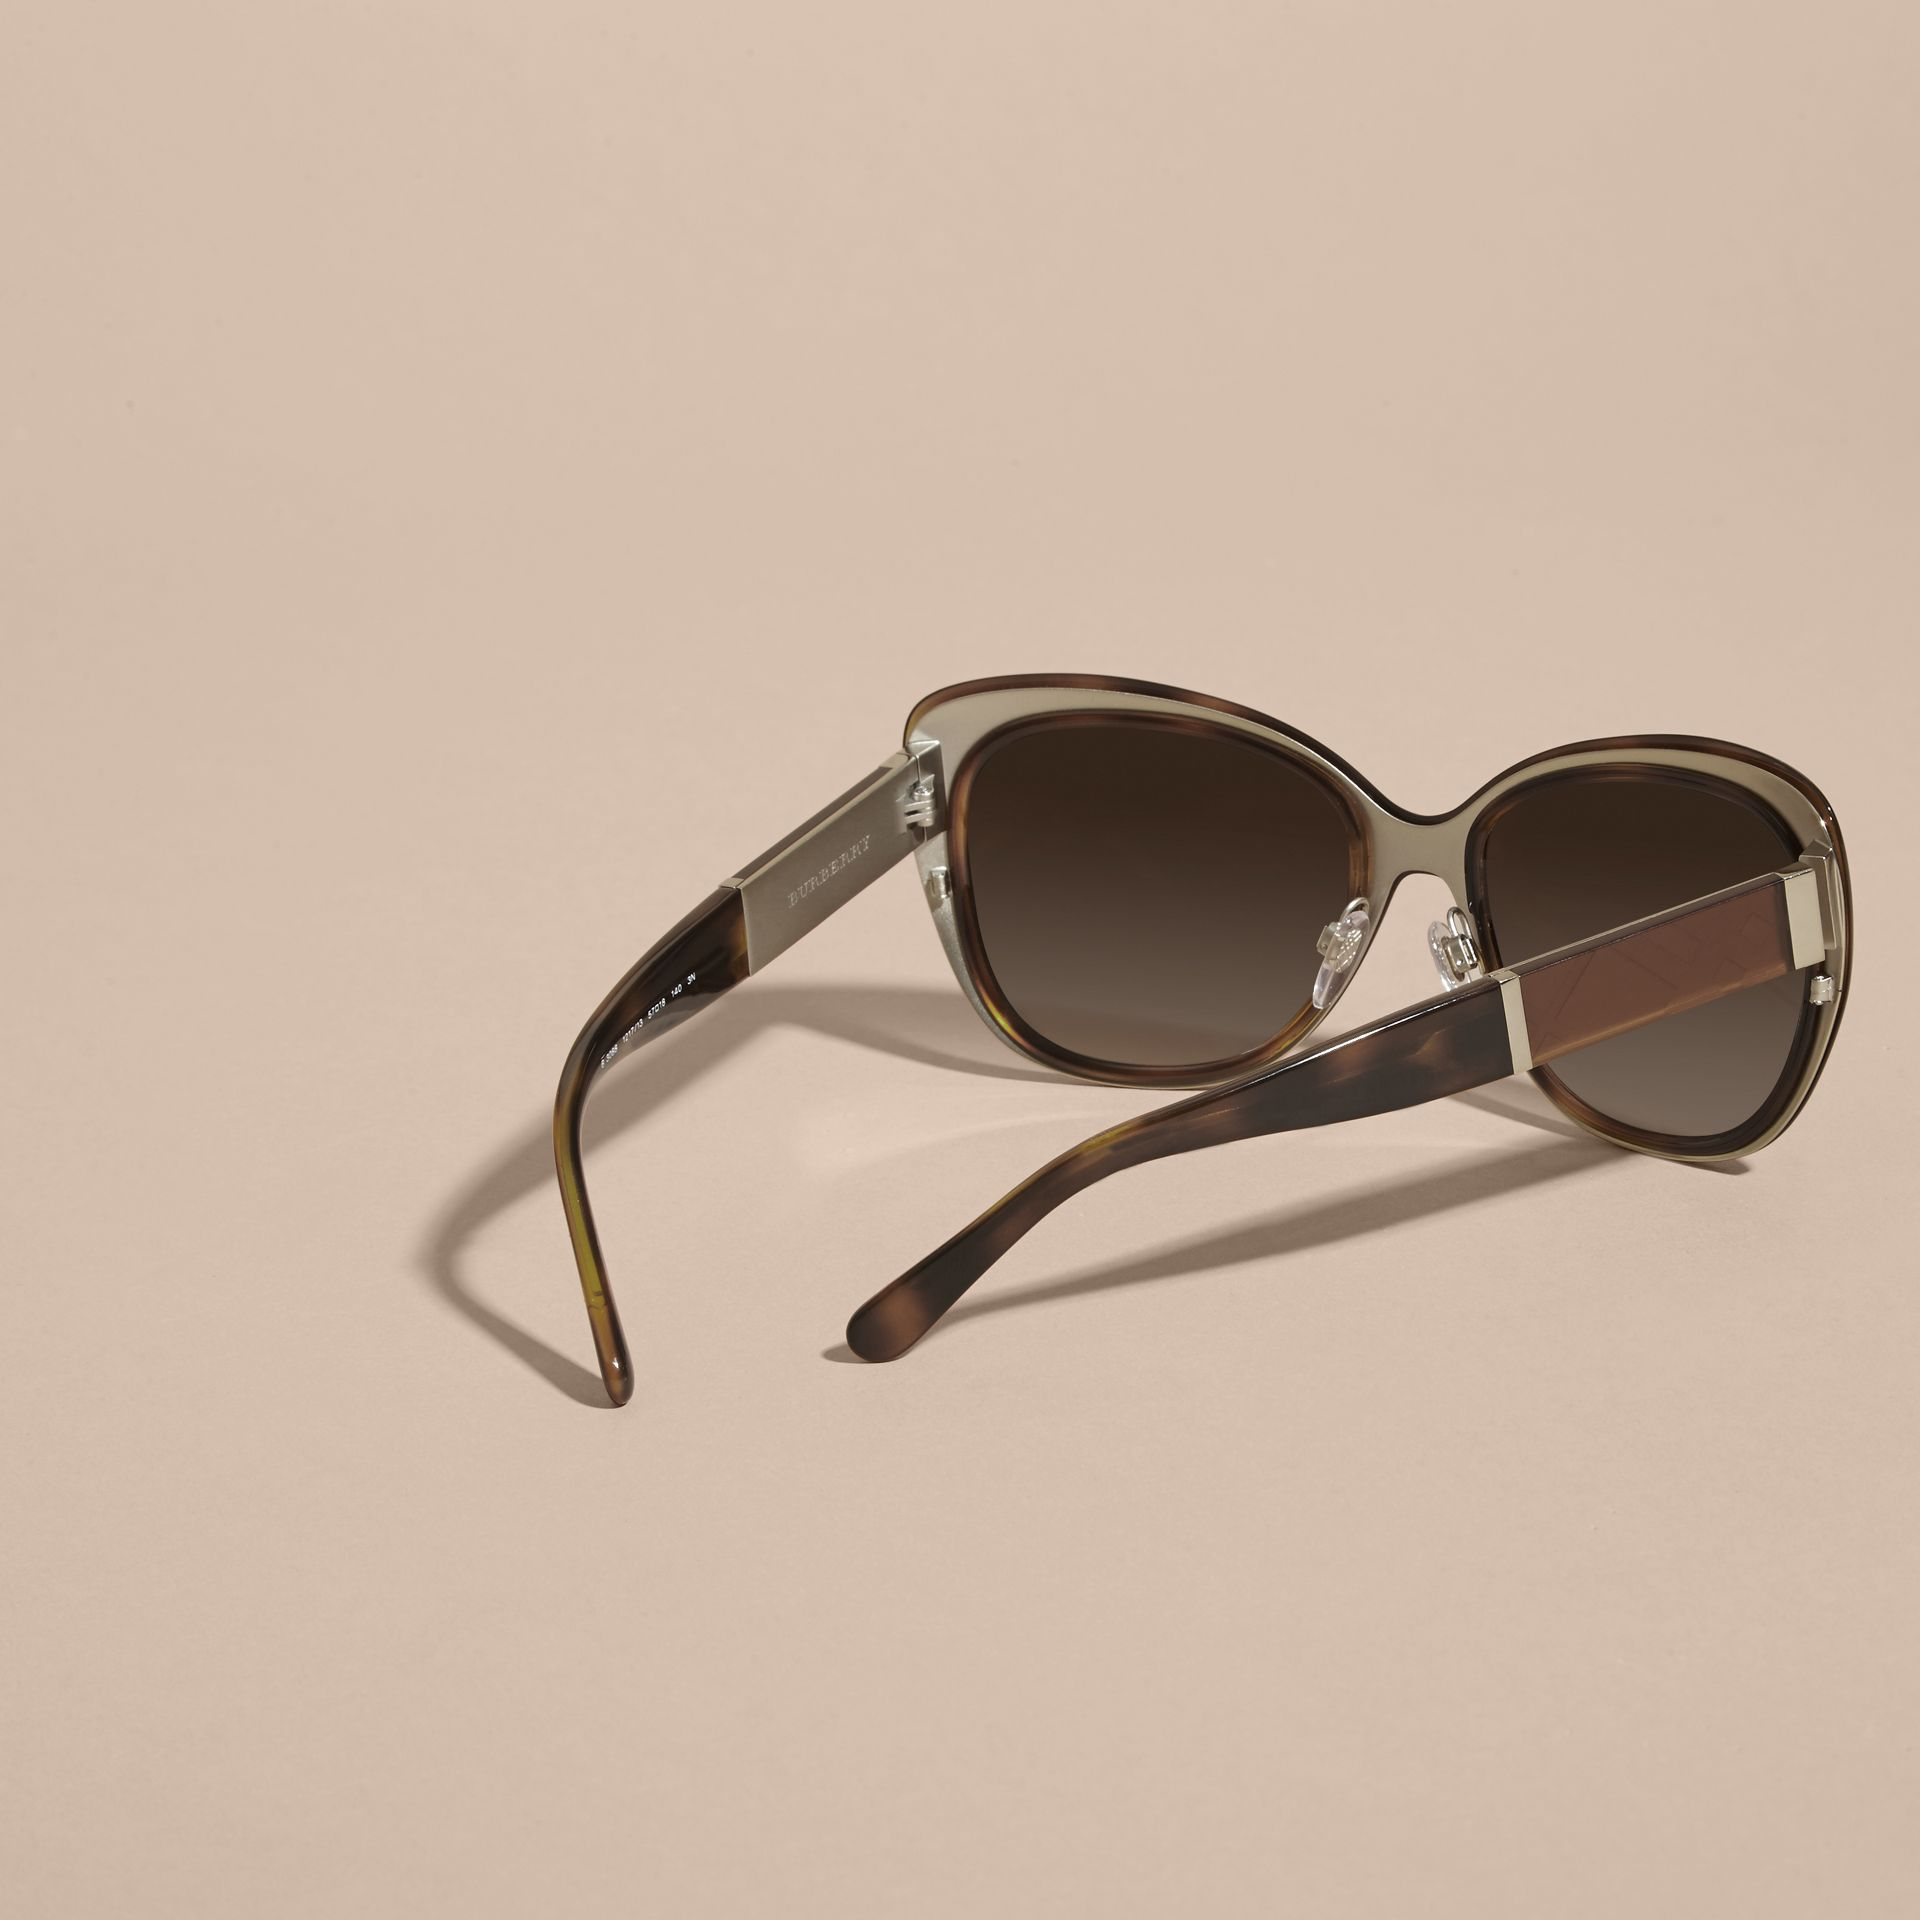 Light russet brown Check Detail Square Cat-eye Sunglasses Light Russet Brown - gallery image 4